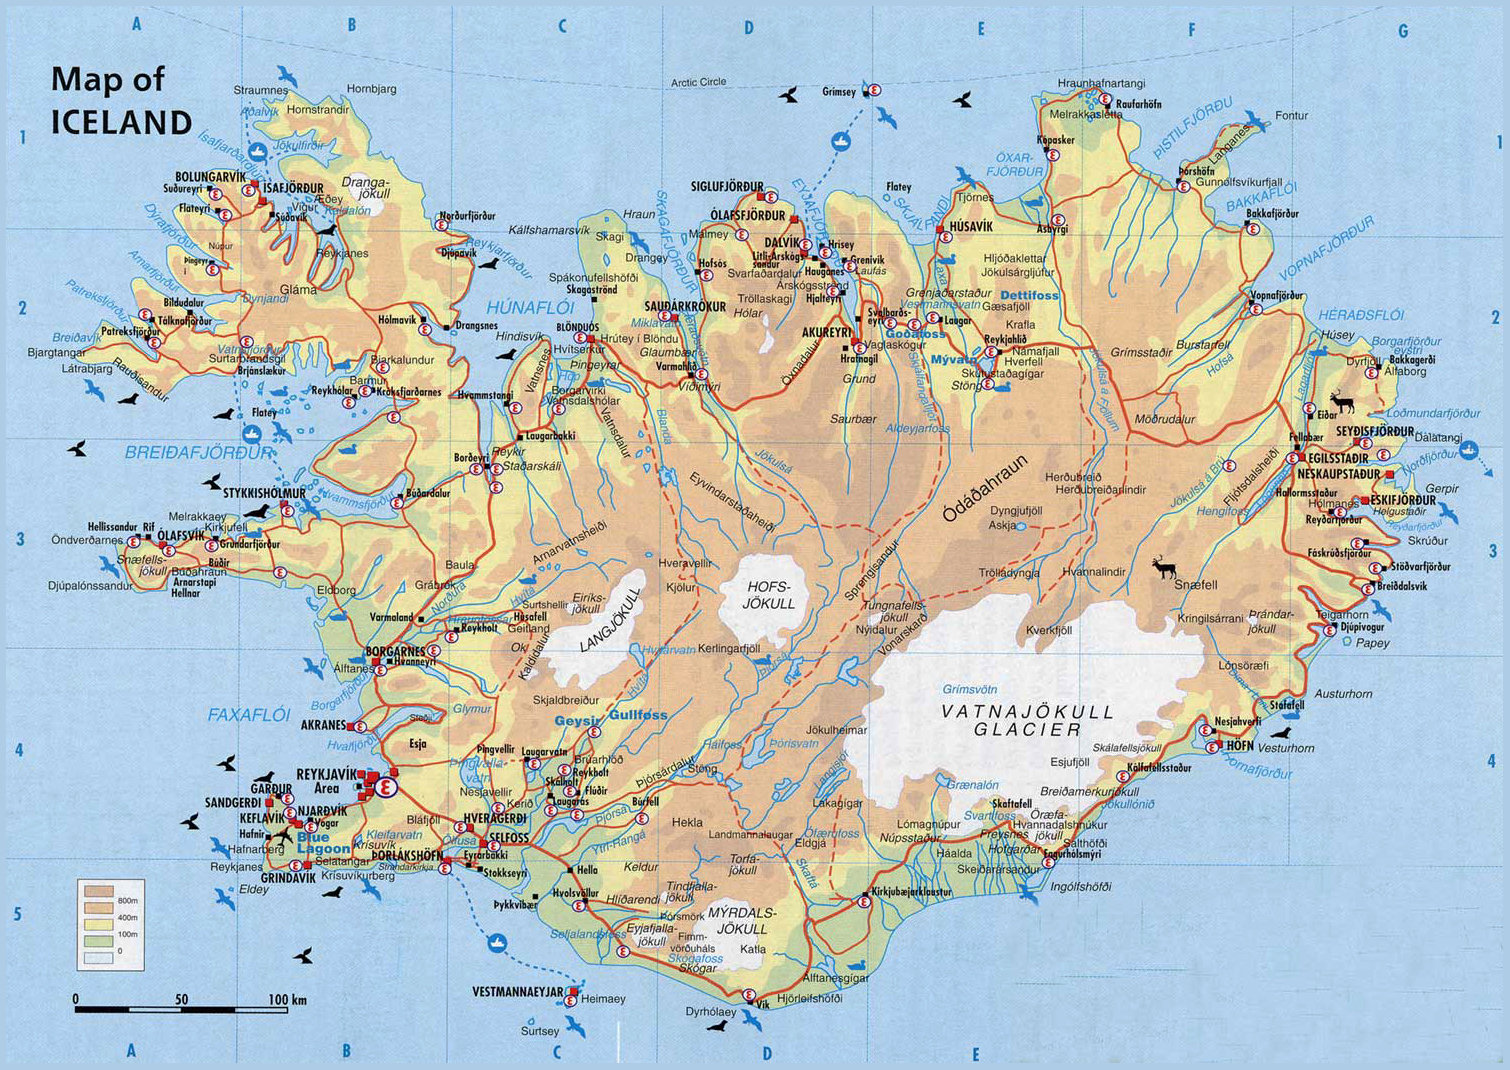 Physical map of Iceland. Iceand physical map | Vidiani.com | Maps of on main cities in iceland, satellite map of iceland, large map of iceland, capital region iceland, temperature map of iceland, landform of iceland, famous people from iceland, blue lagoon iceland, vegetation map of iceland, printed map of iceland, detailed map of iceland, capital of iceland, a map of industries in iceland, population density of iceland, topographical map of iceland, time zone of iceland, political map of iceland, topographic map of iceland, map of hotels in iceland, physical features of iceland,